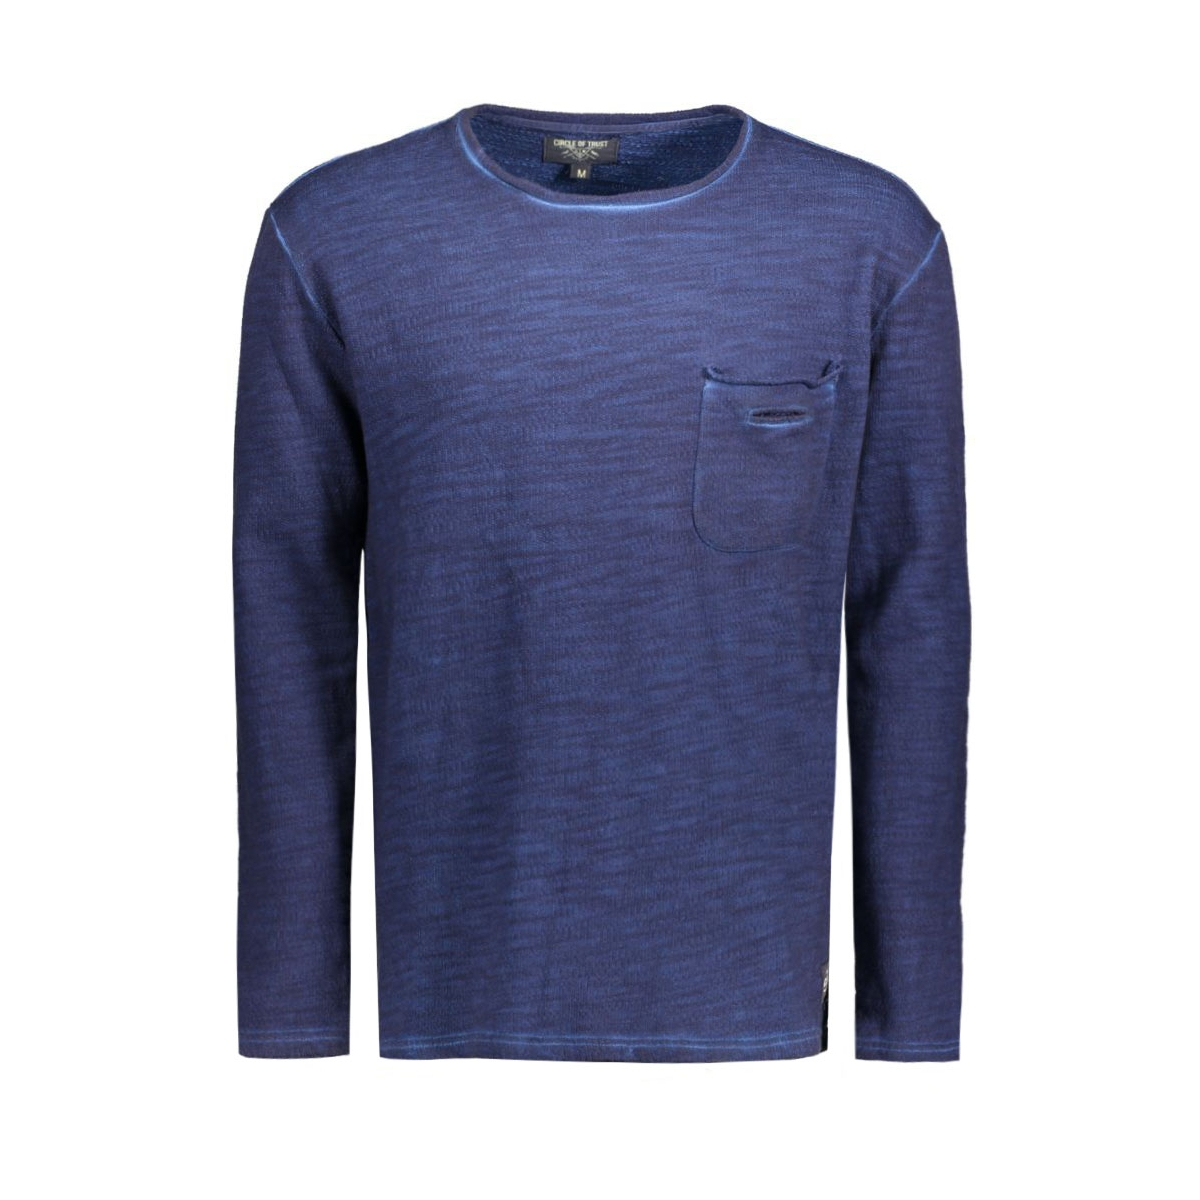 hw16.19.1542 griffin sweater circle of trust sweater frosted navy